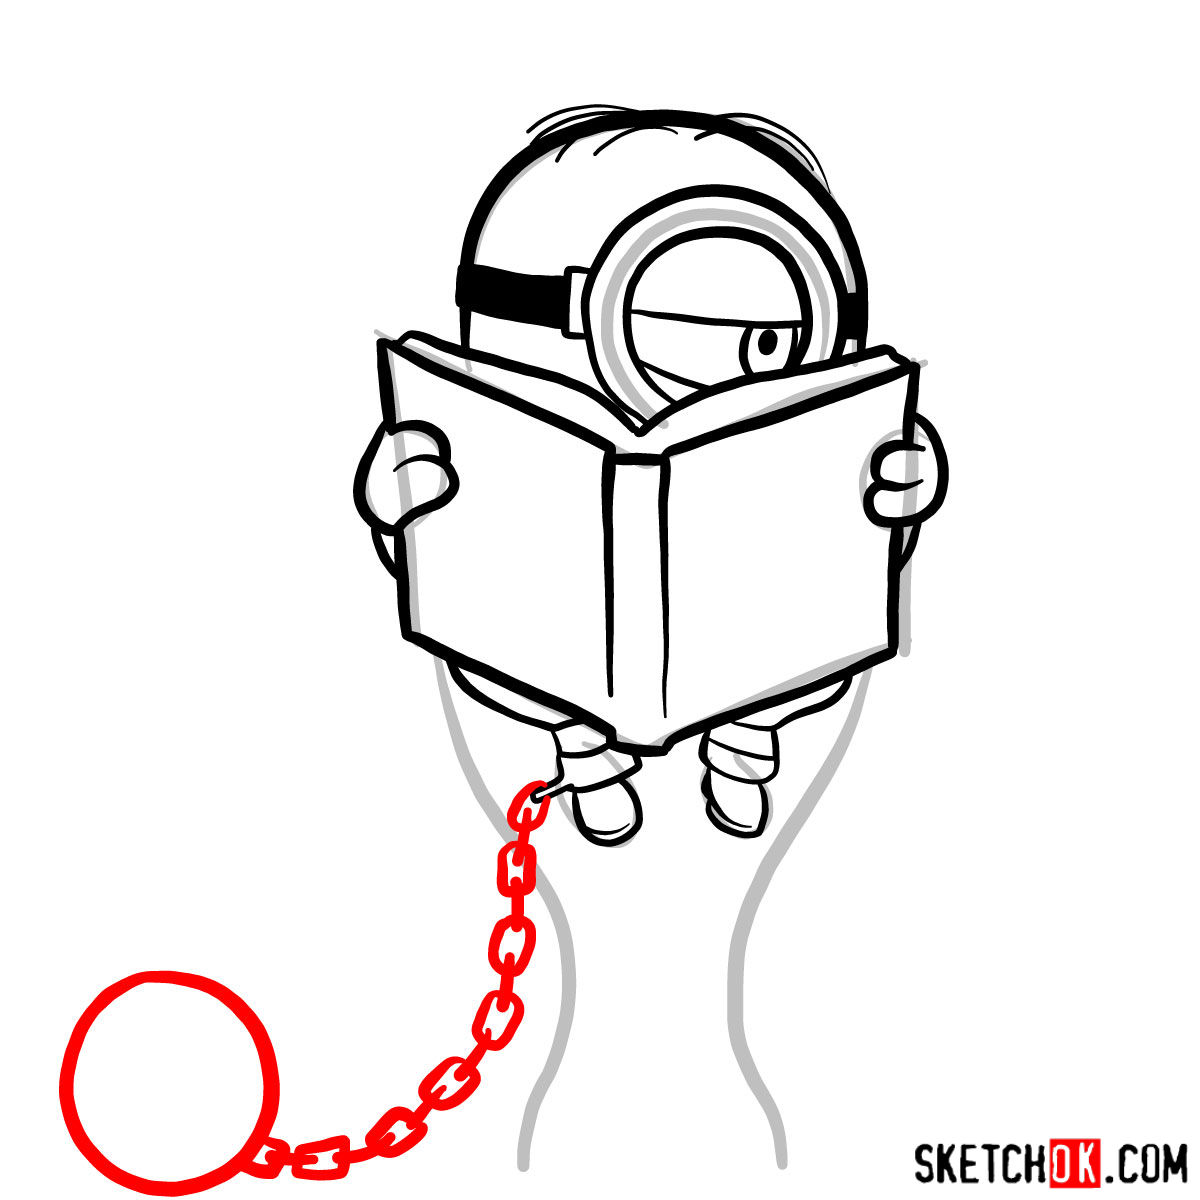 How to draw minion in the toilet reading a book - step 07